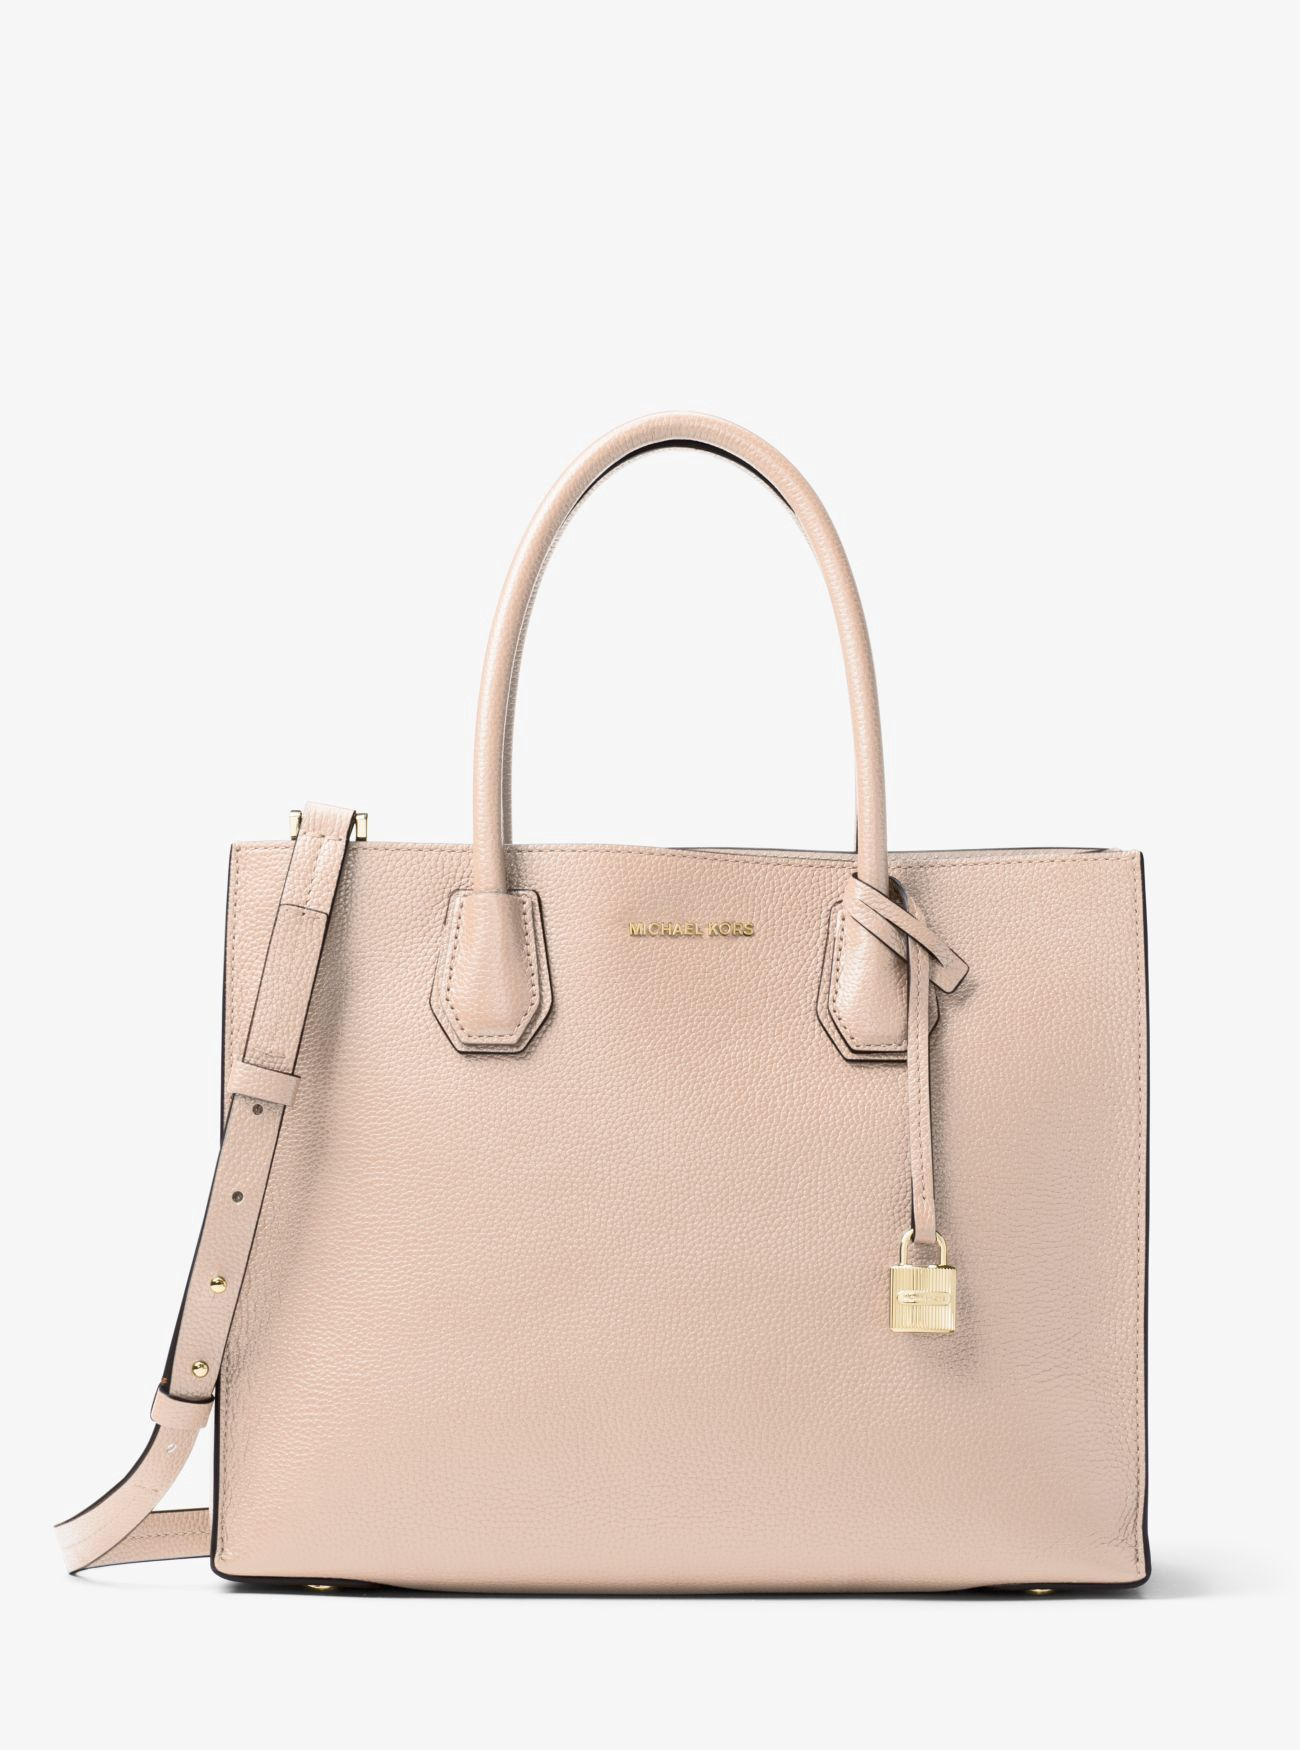 09b0c51e572b MICHAEL KORS Mercer Large Leather Tote. #michaelkors #bags #canvas #tote # leather #lining #polyester #shoulder bags #hand bags #